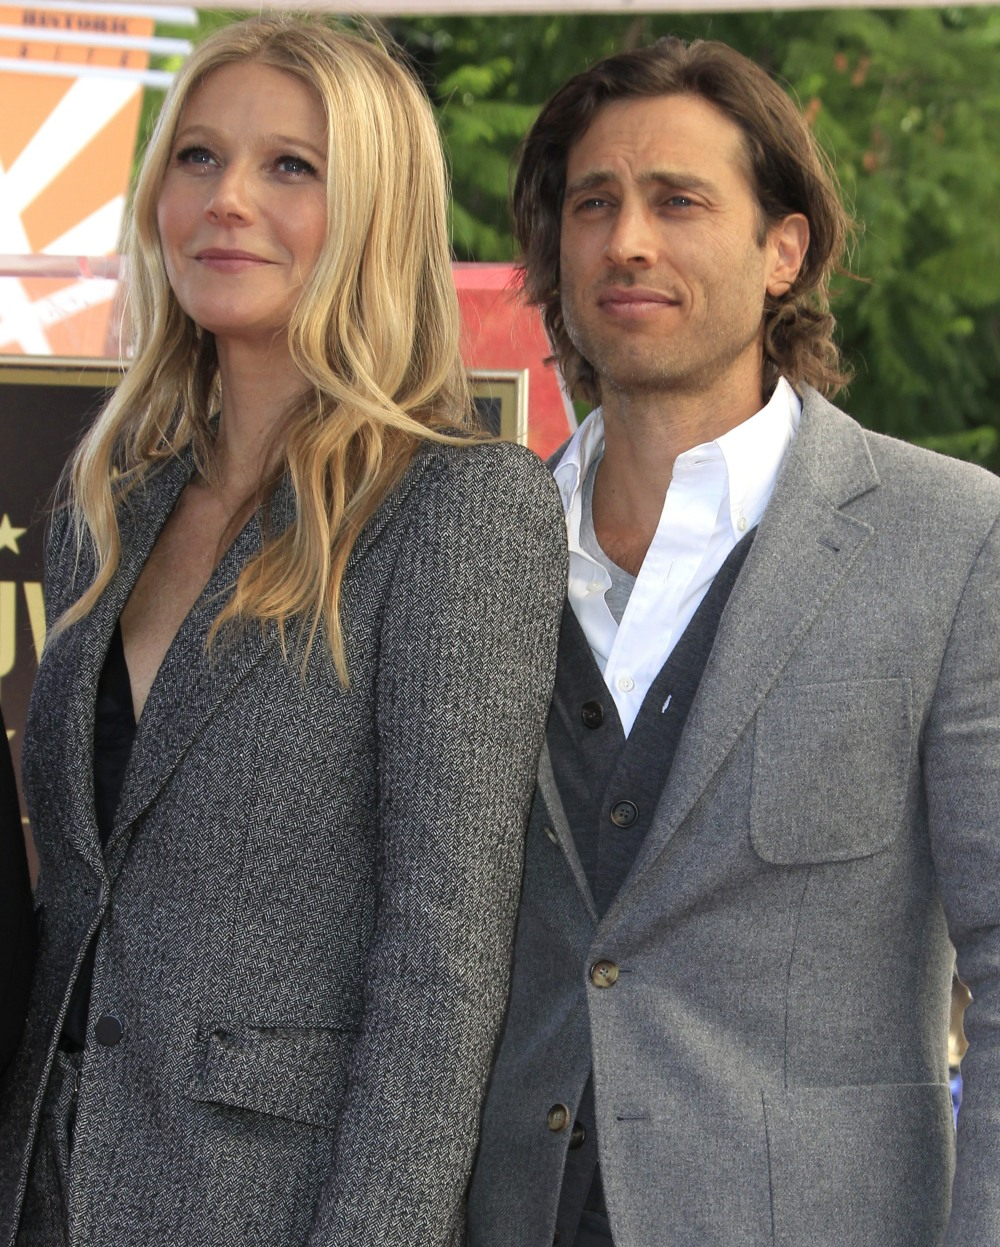 Gwyneth Paltrow & Brad Falchuk don't live together, only do overnights 4 times a week